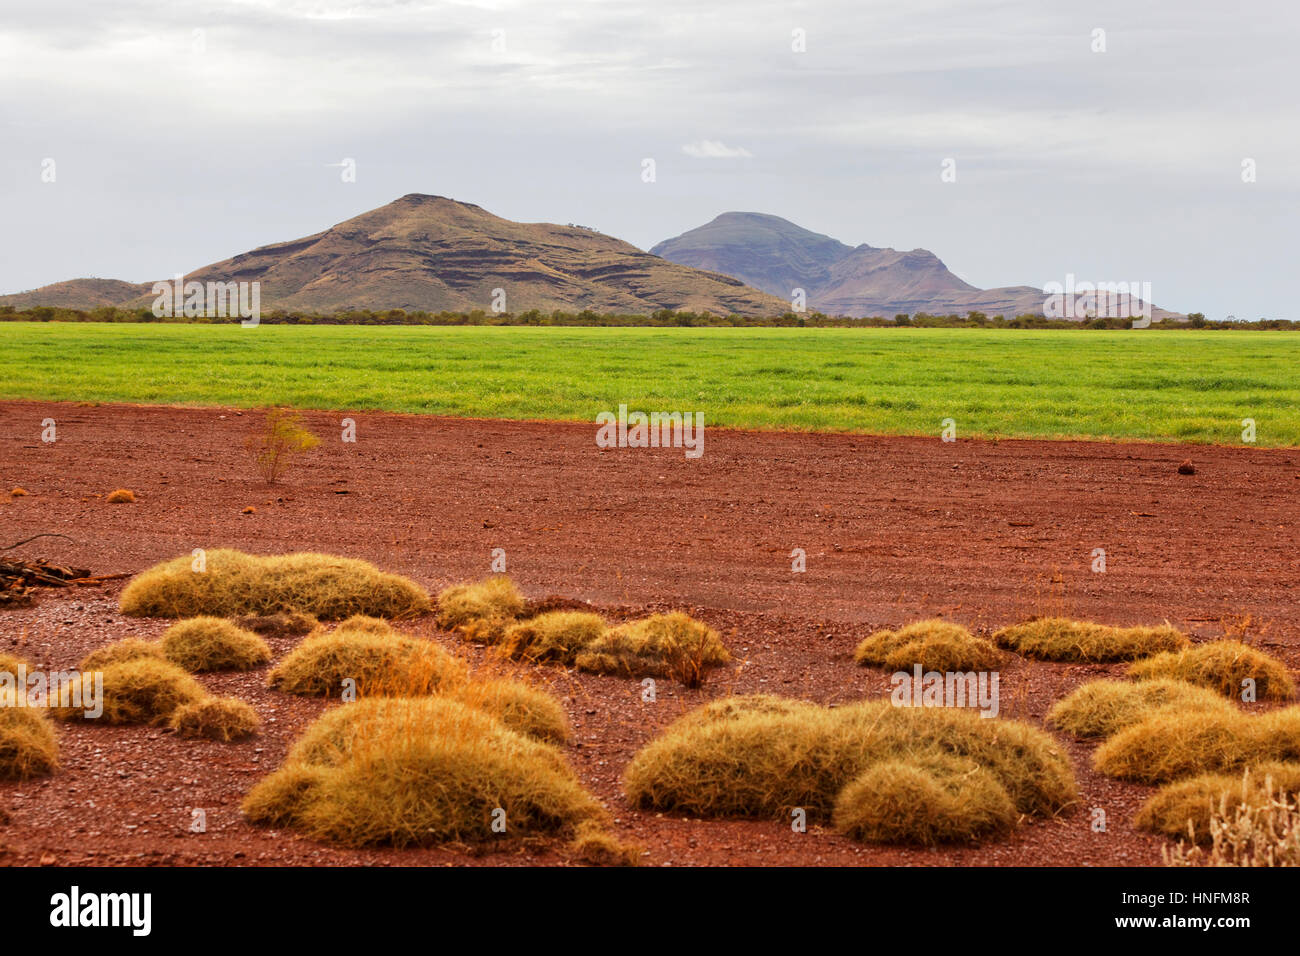 Hay growing in outback Australia for commercial purposes by Rio